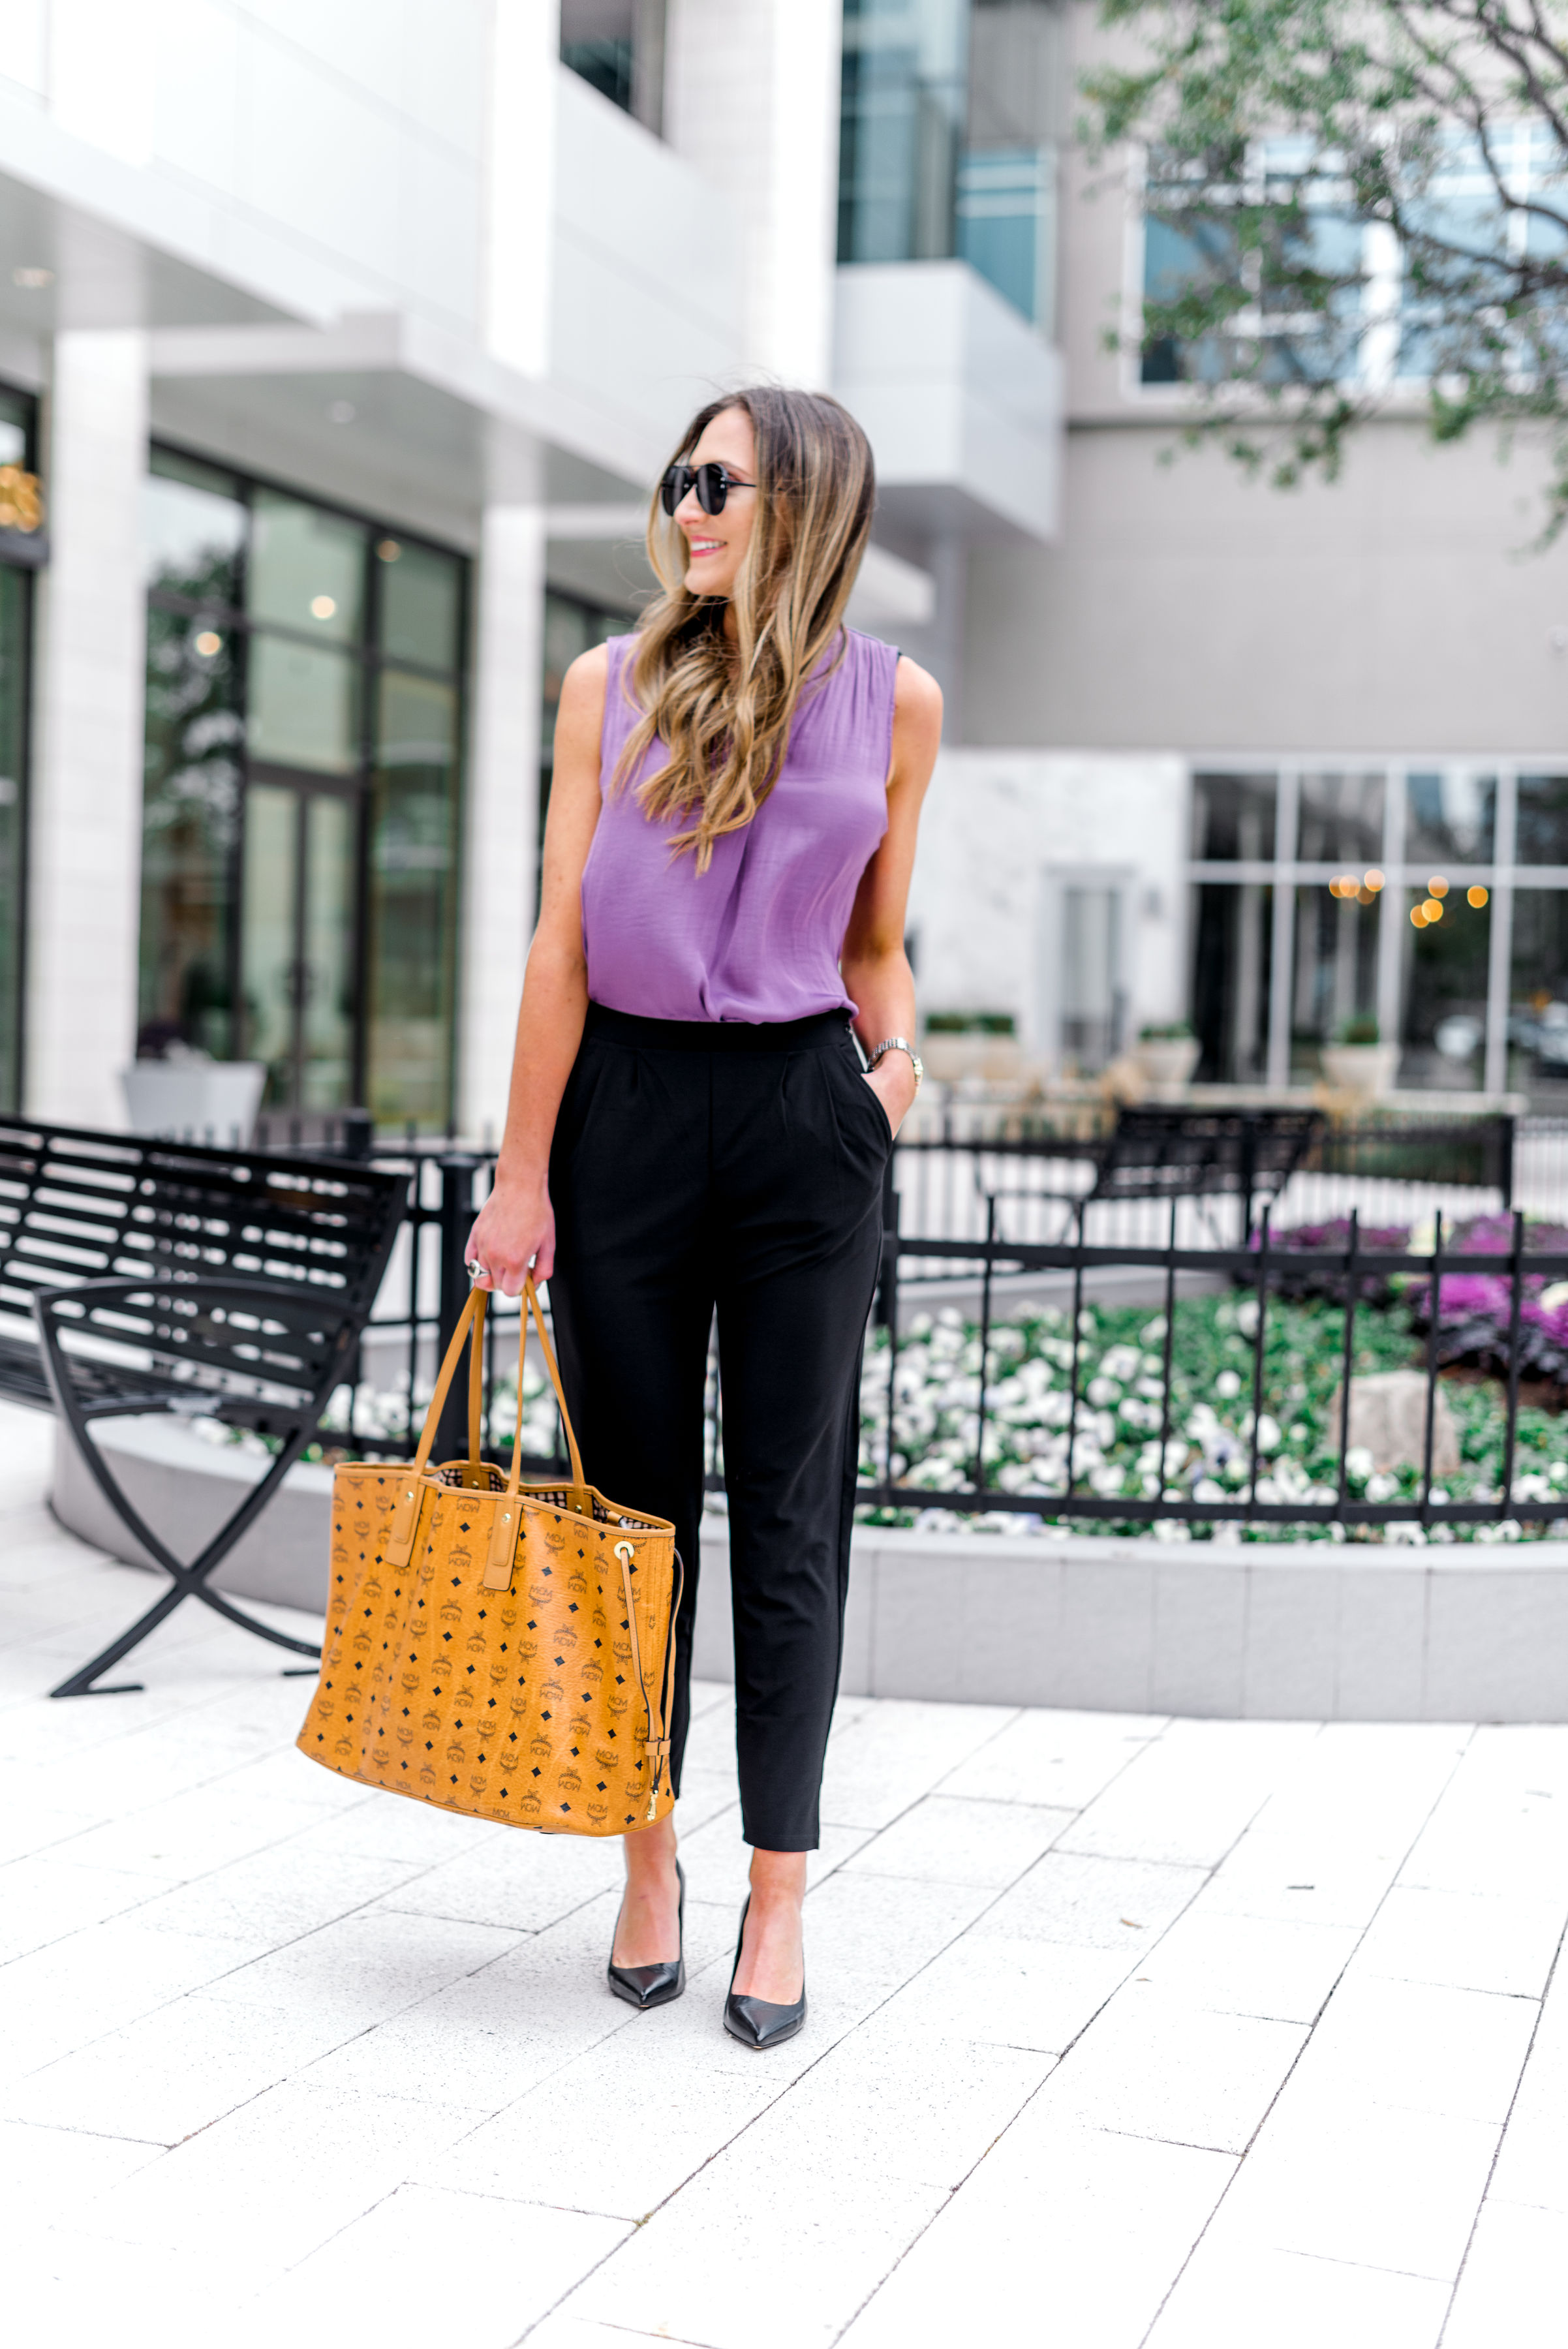 Workwear Staples from Day to Night